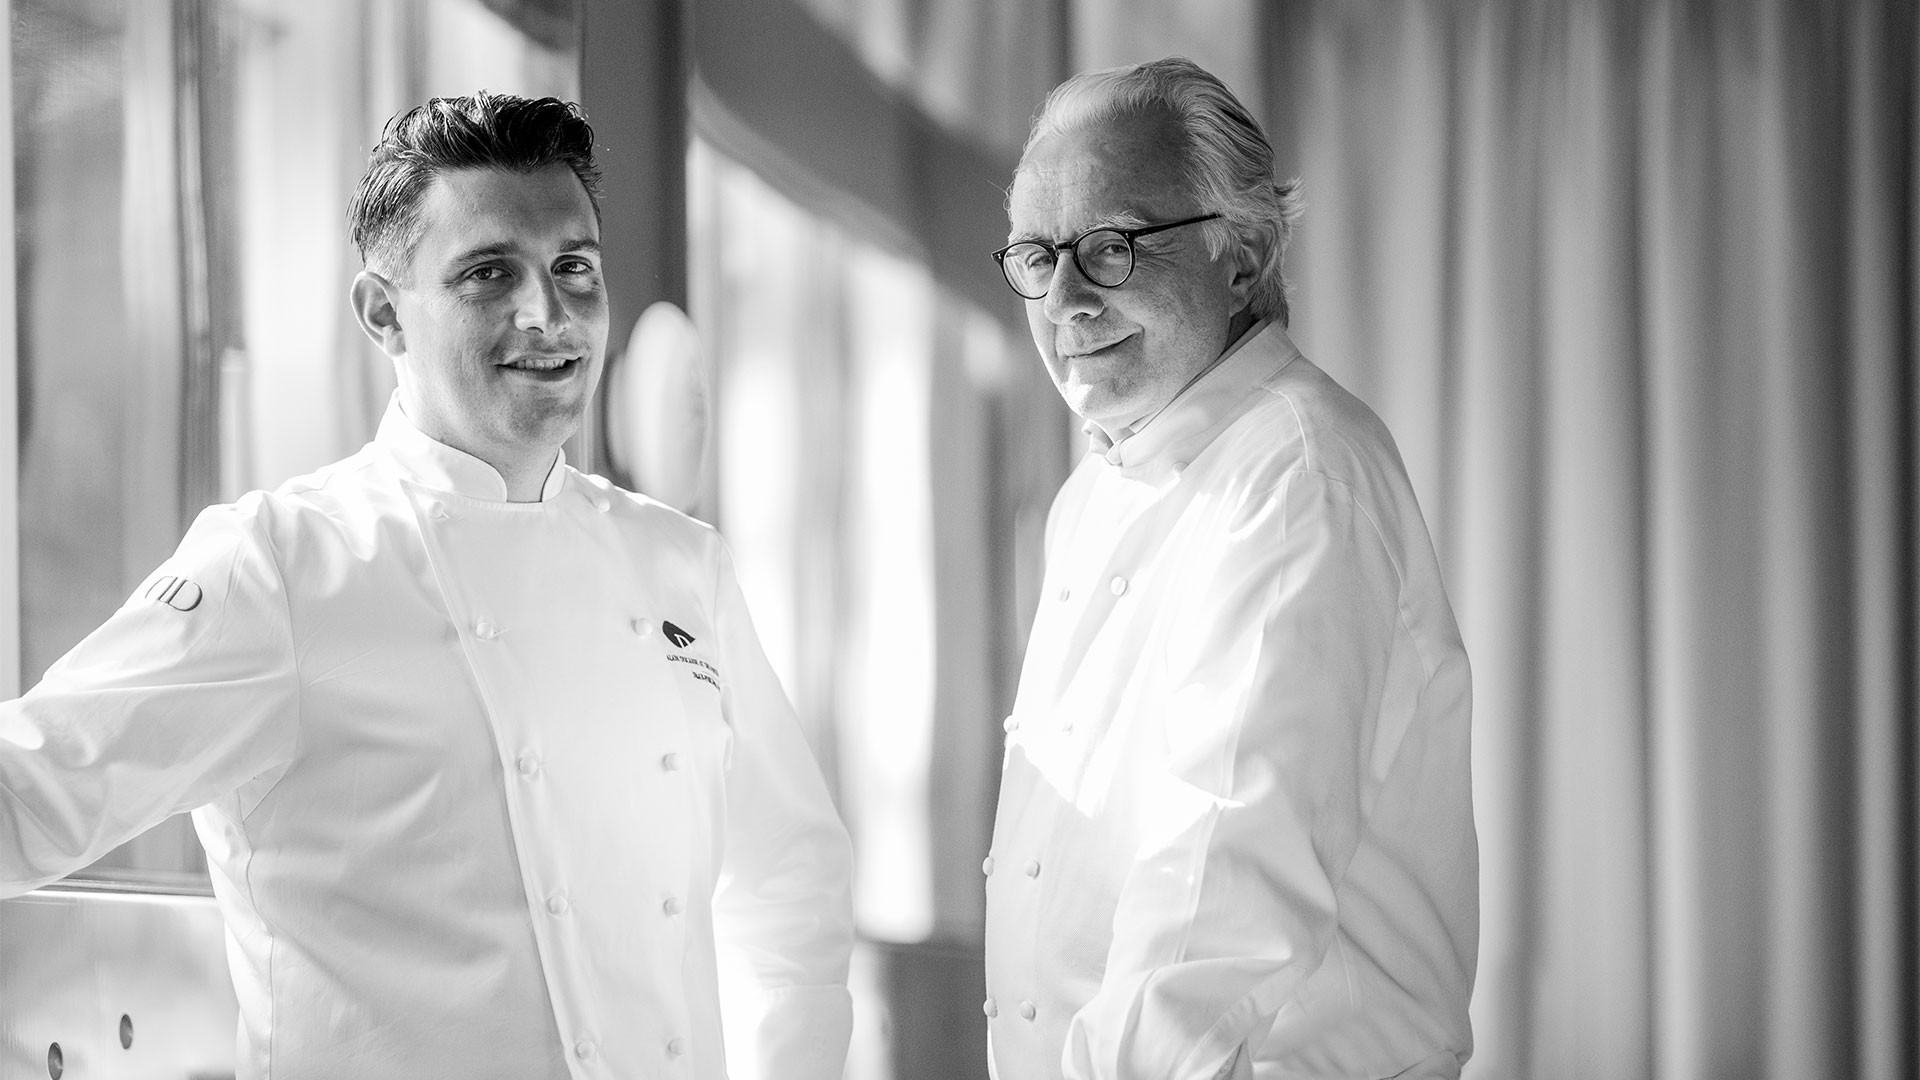 Alain Ducasse with executive chef Jean-Philippe Blondet